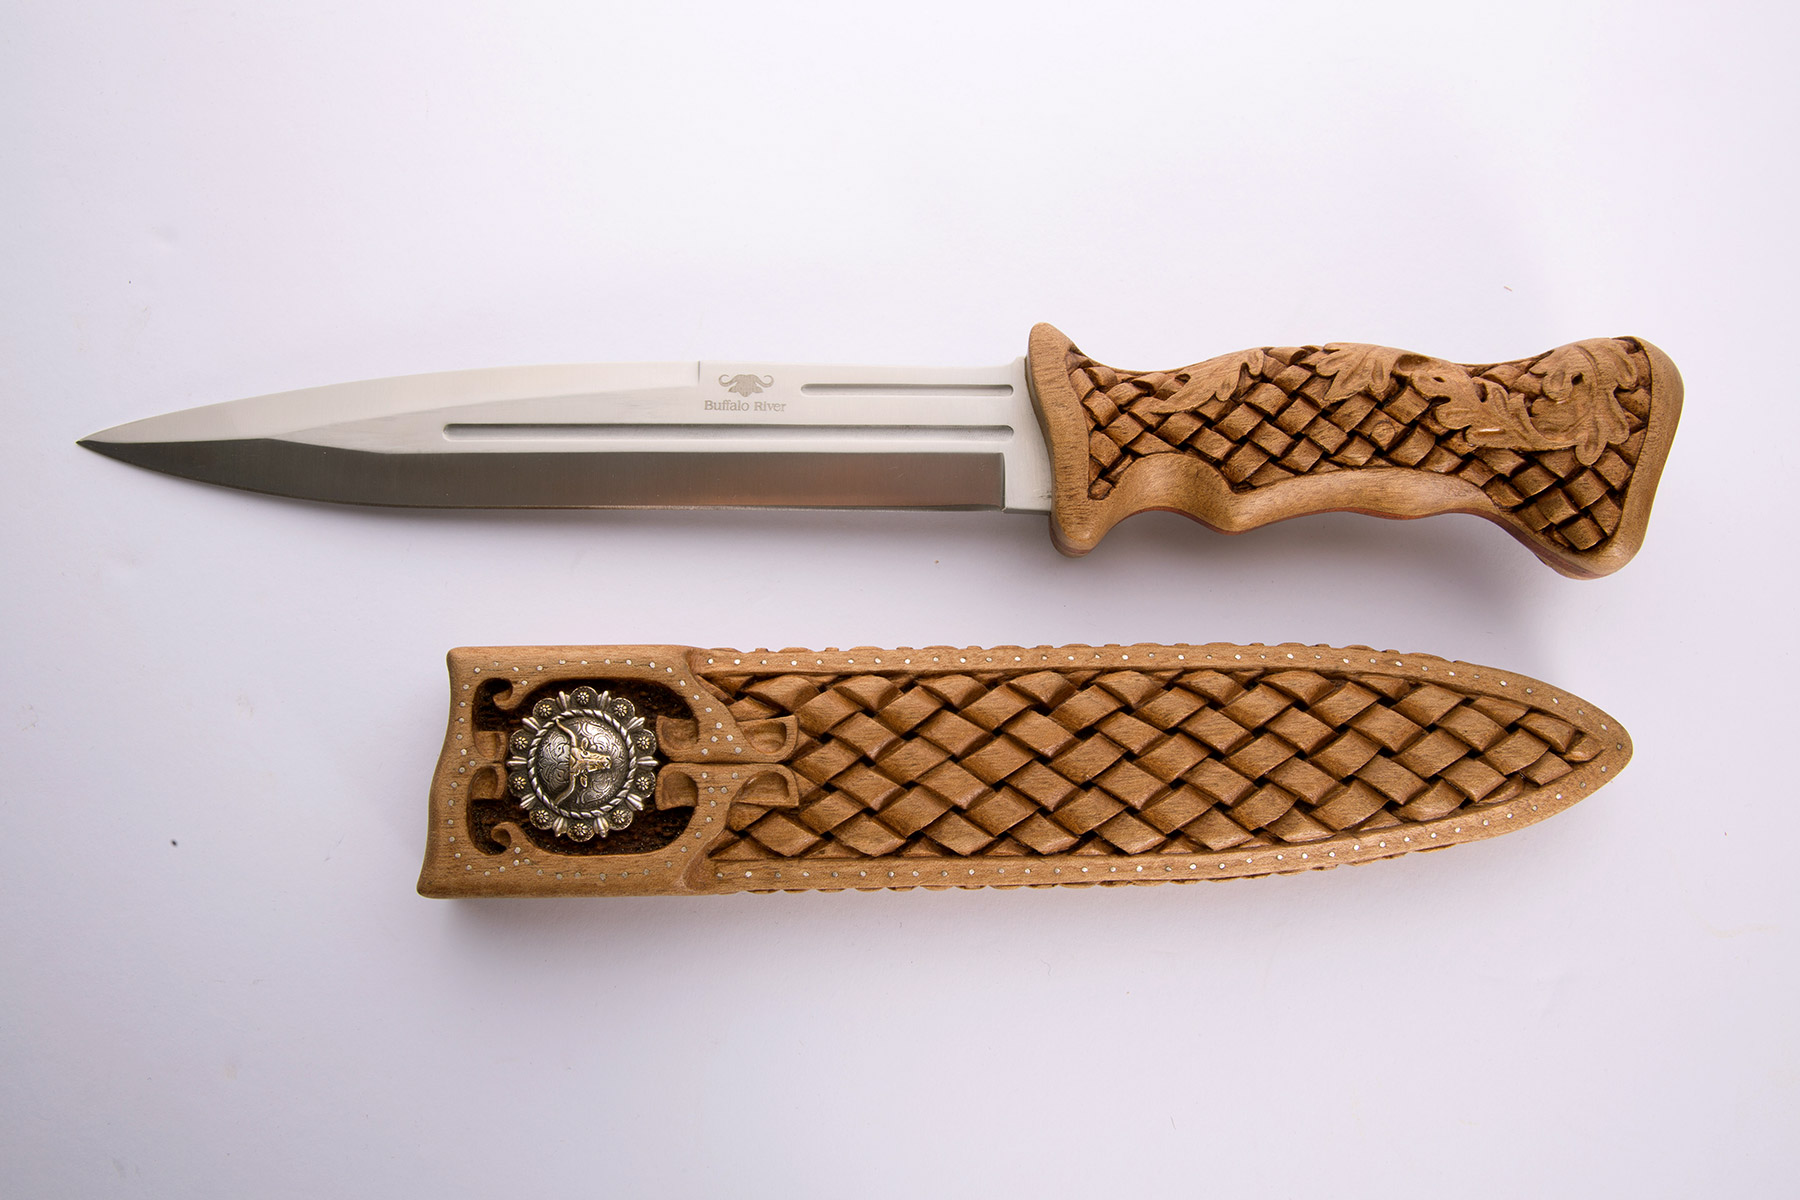 Custom made and carved knife handle and sheath (open view)